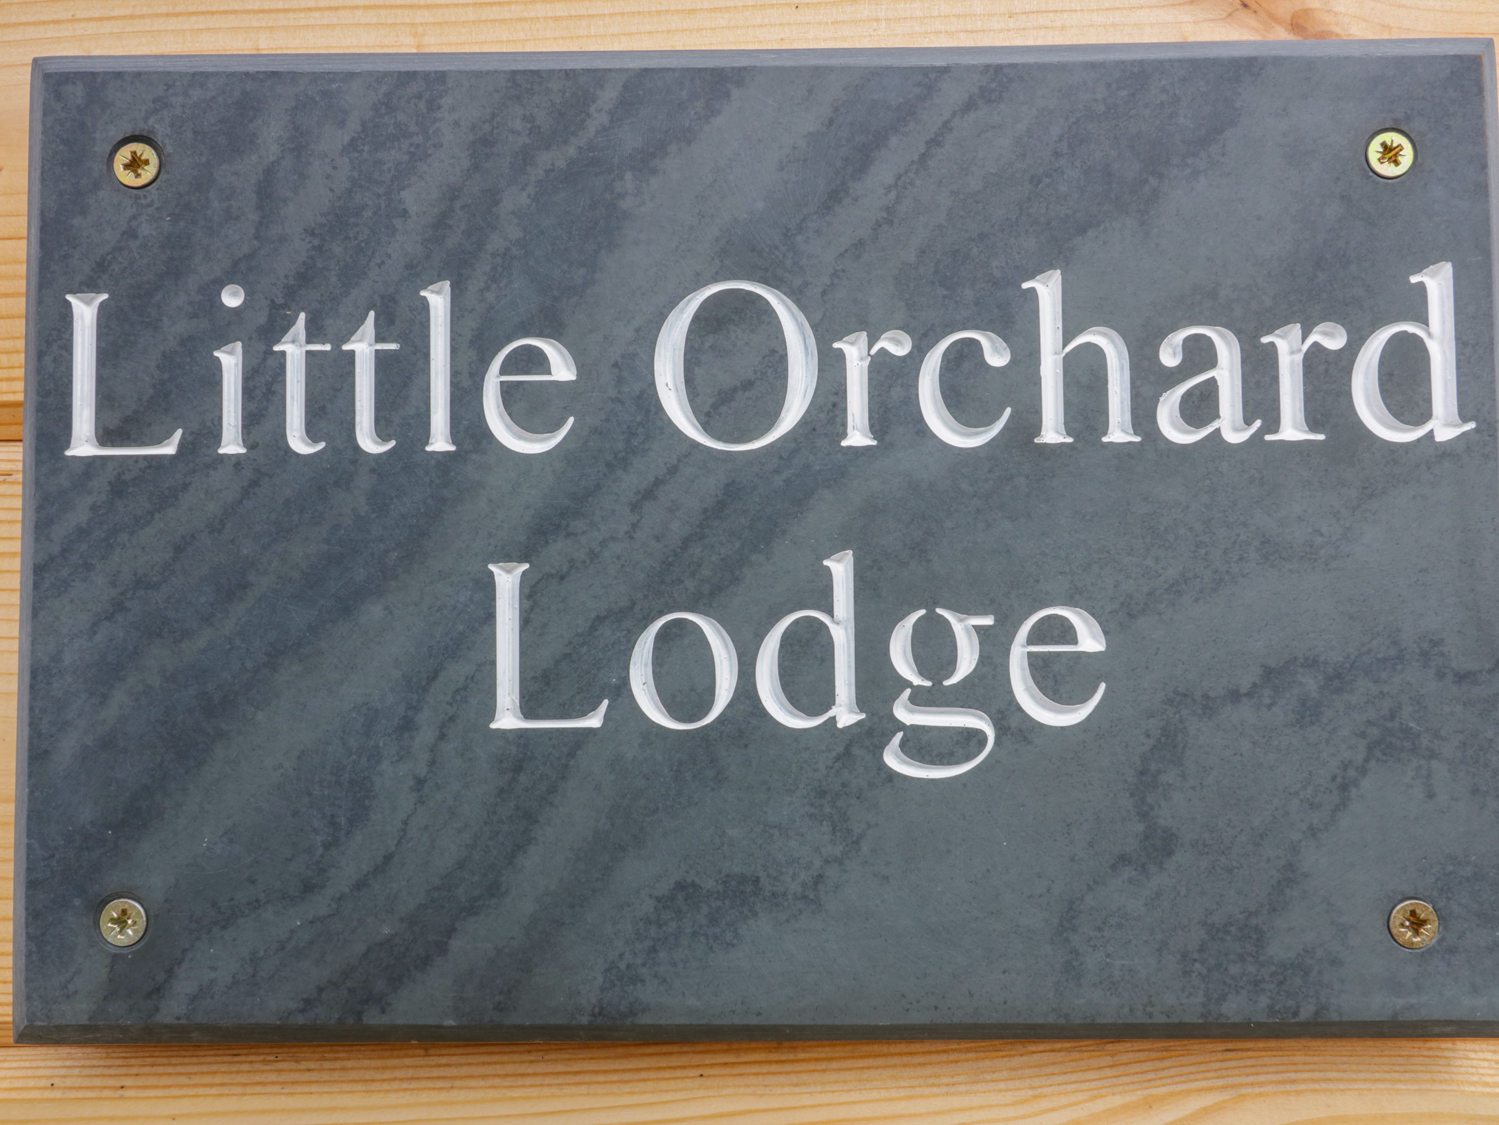 Little Orchard Lodge